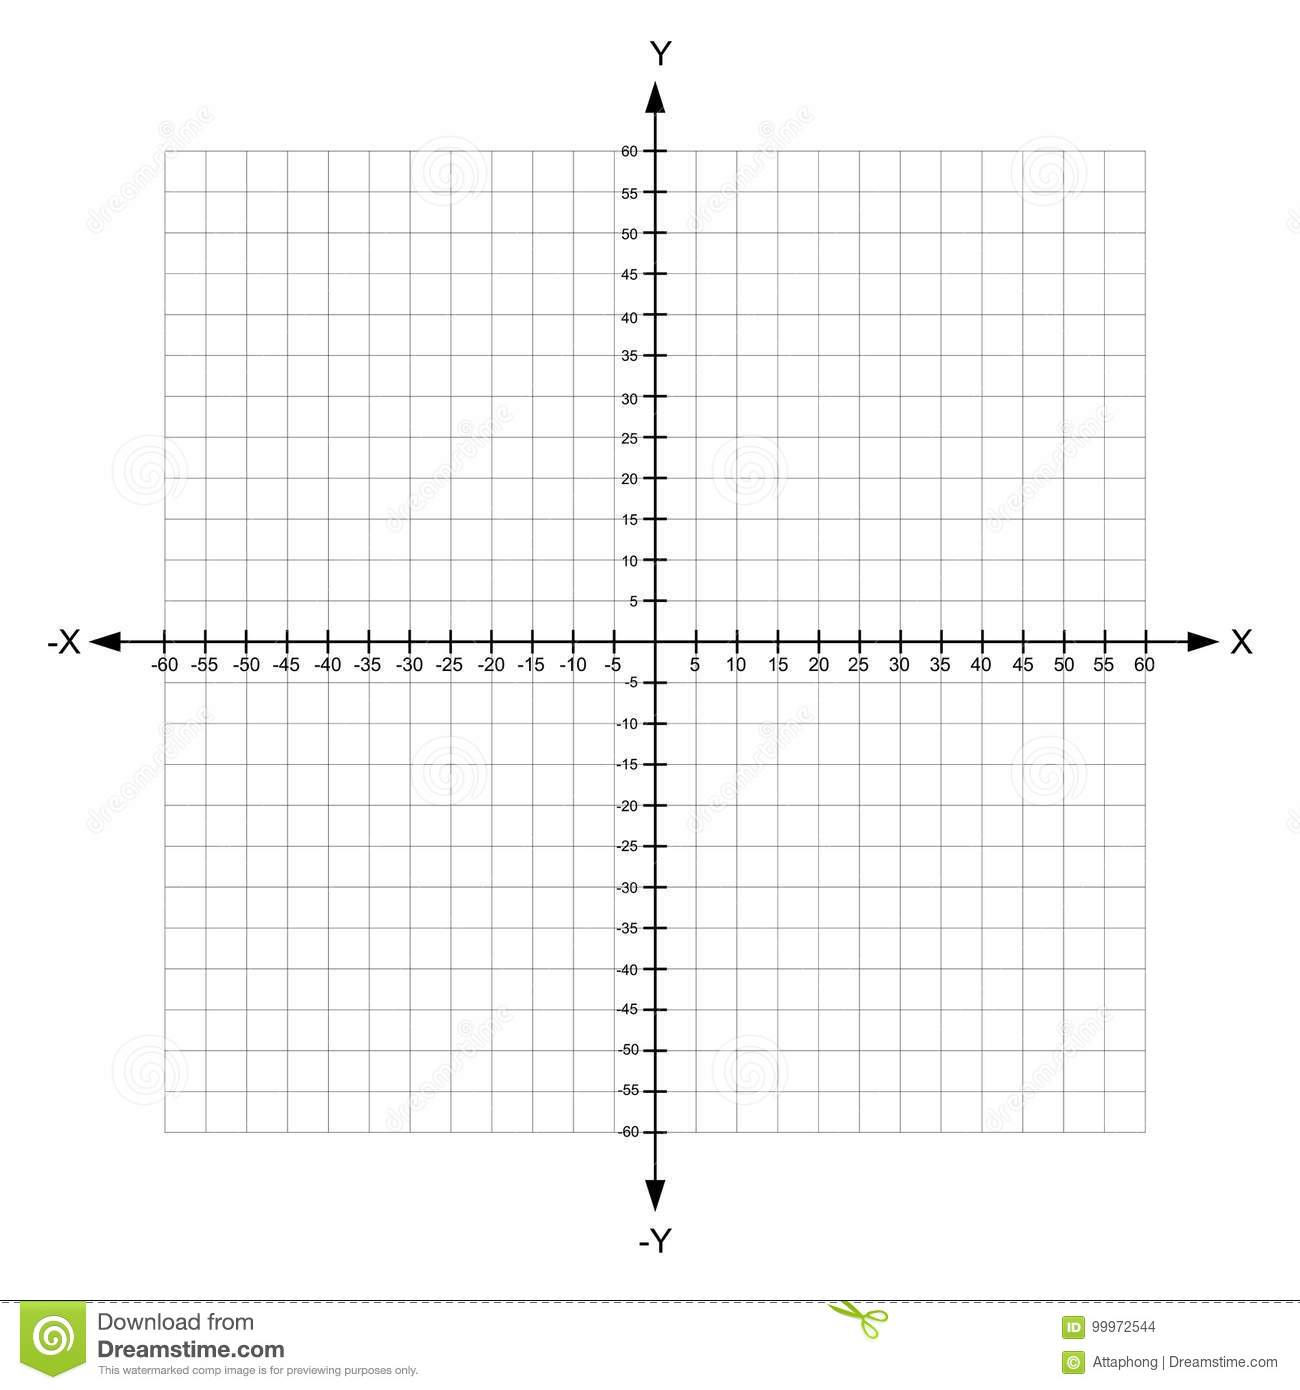 hight resolution of 25 PRINTABLE MATH WORKSHEETS COORDINATE PLANE